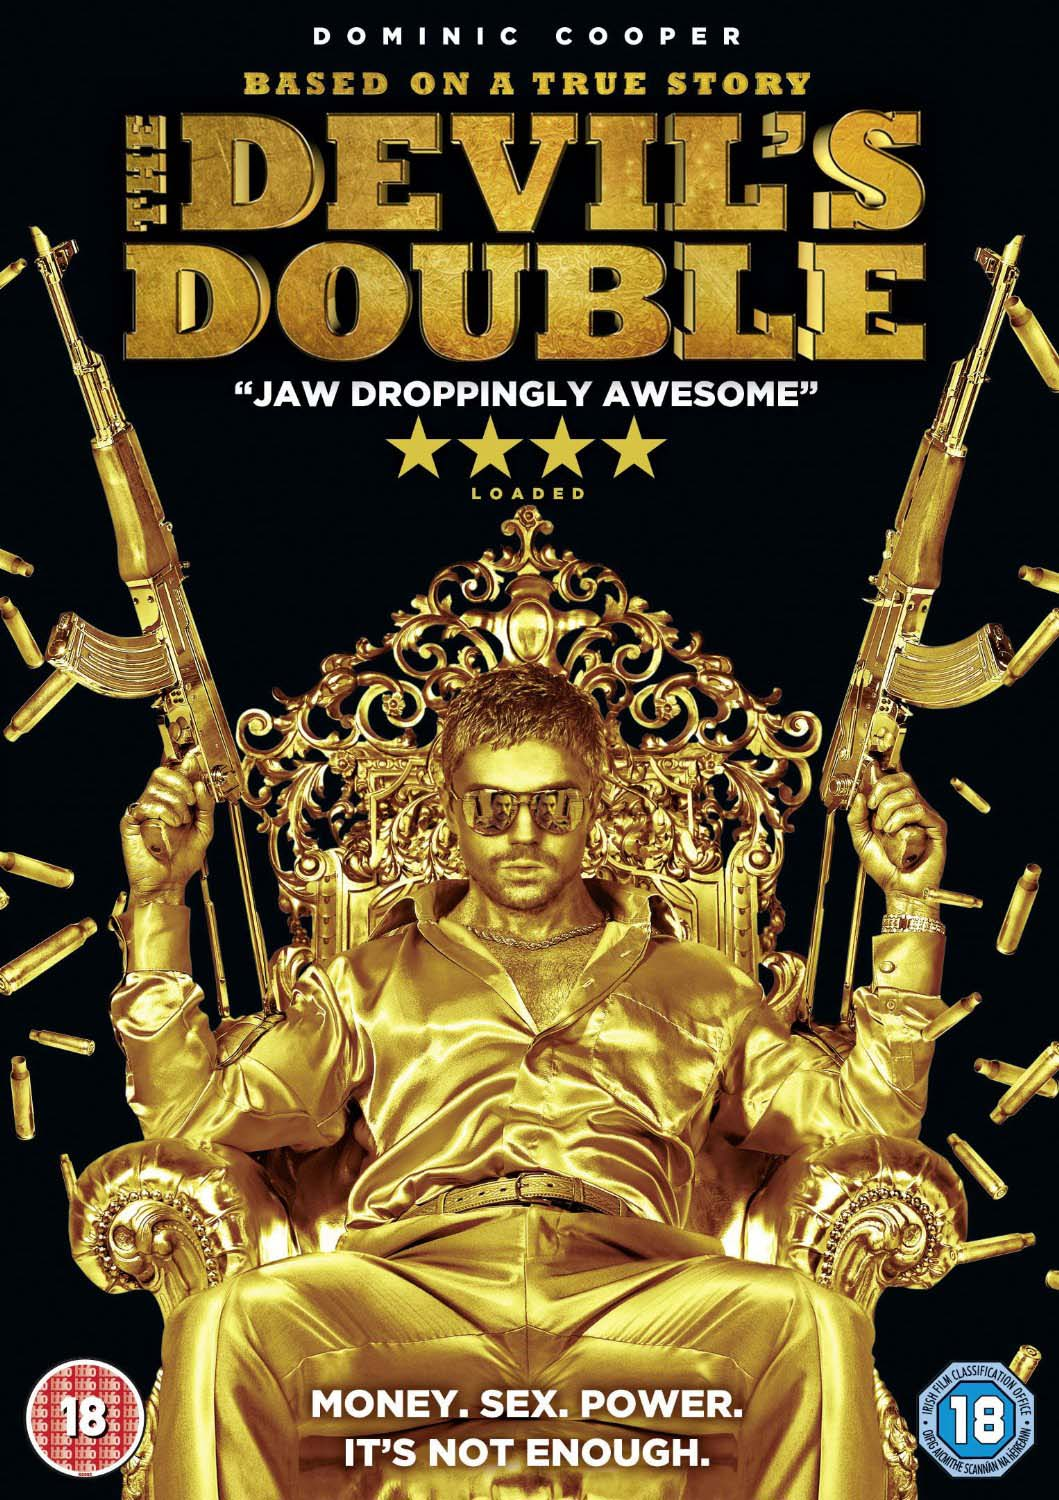 The Devils Double movie